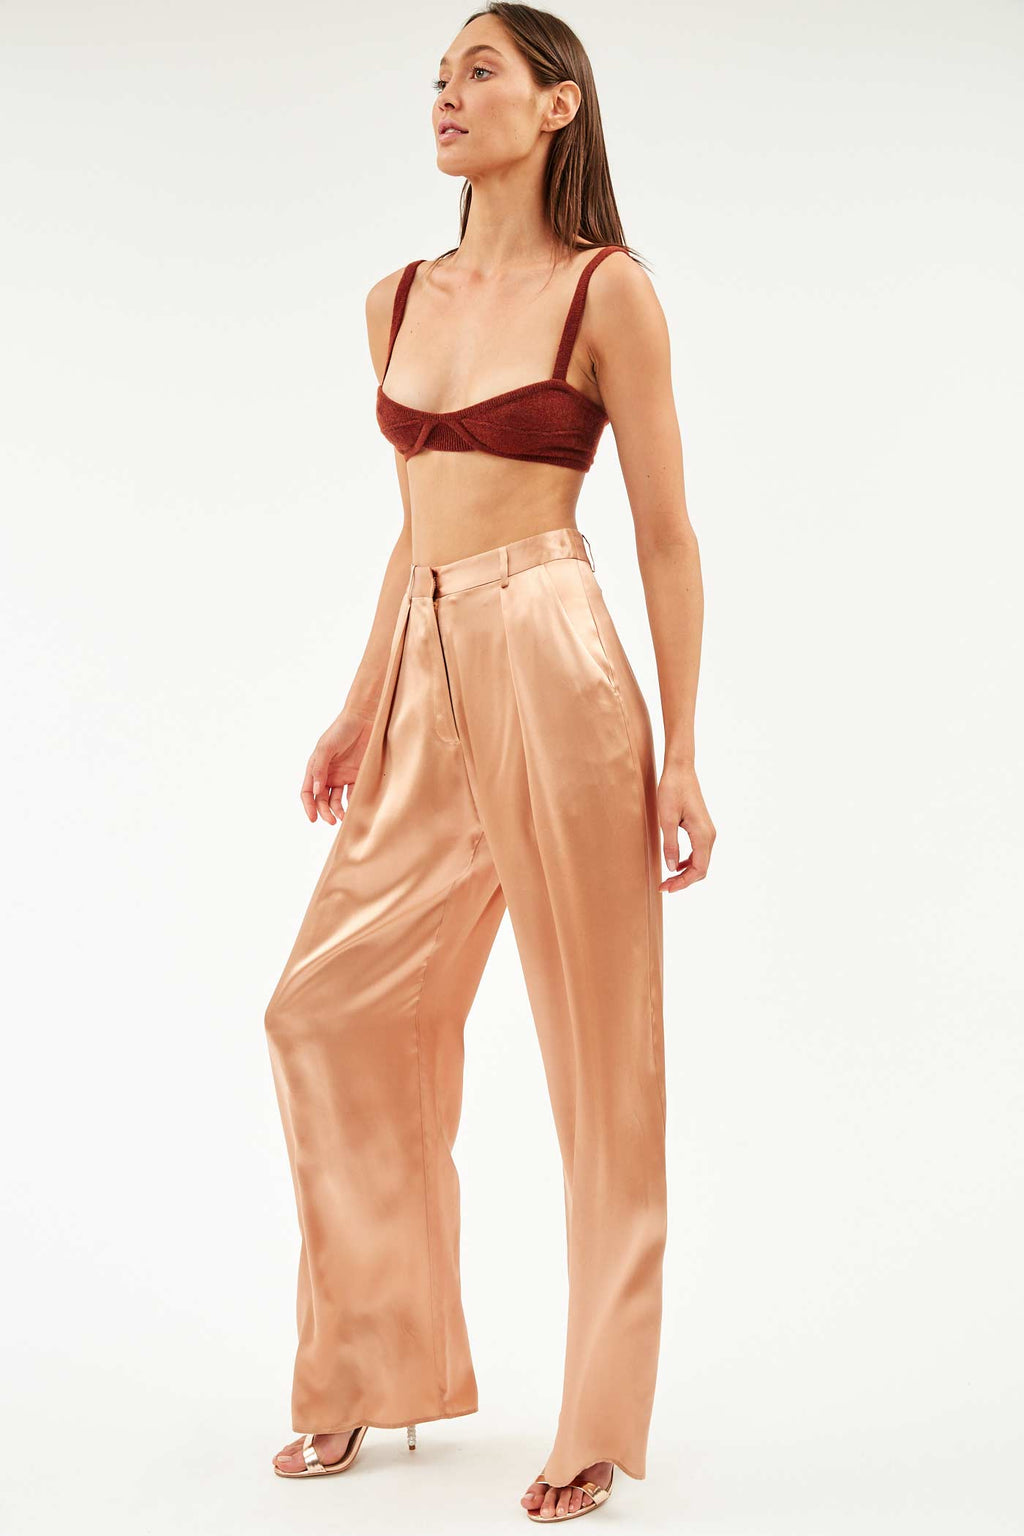 Nude Silk Boy Pant